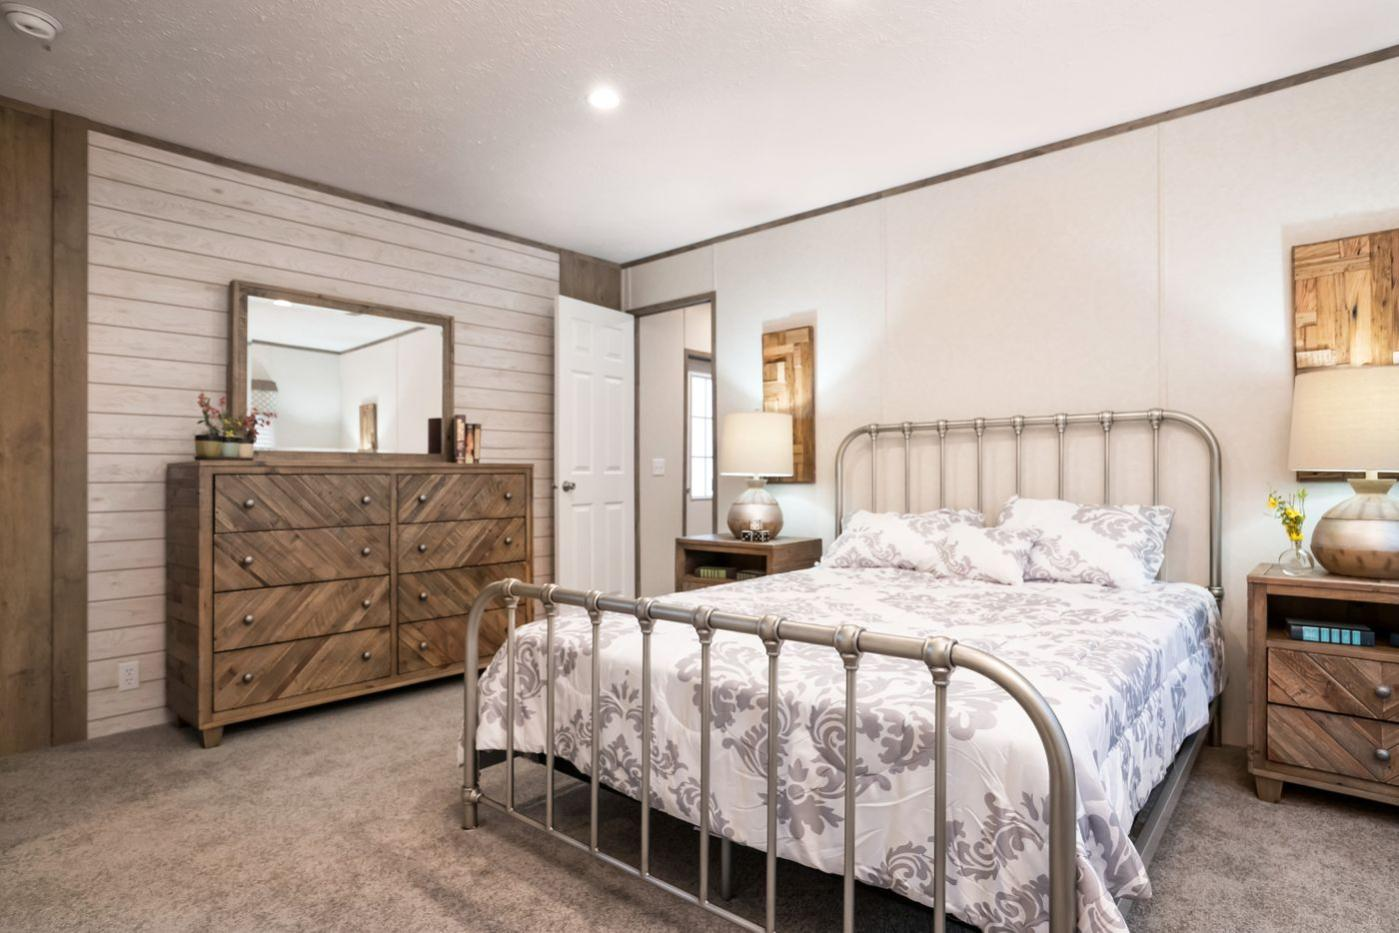 Bedroom in the Edge Manufactured Home from Worldwide Mobile Homes in Lumberton, Texas